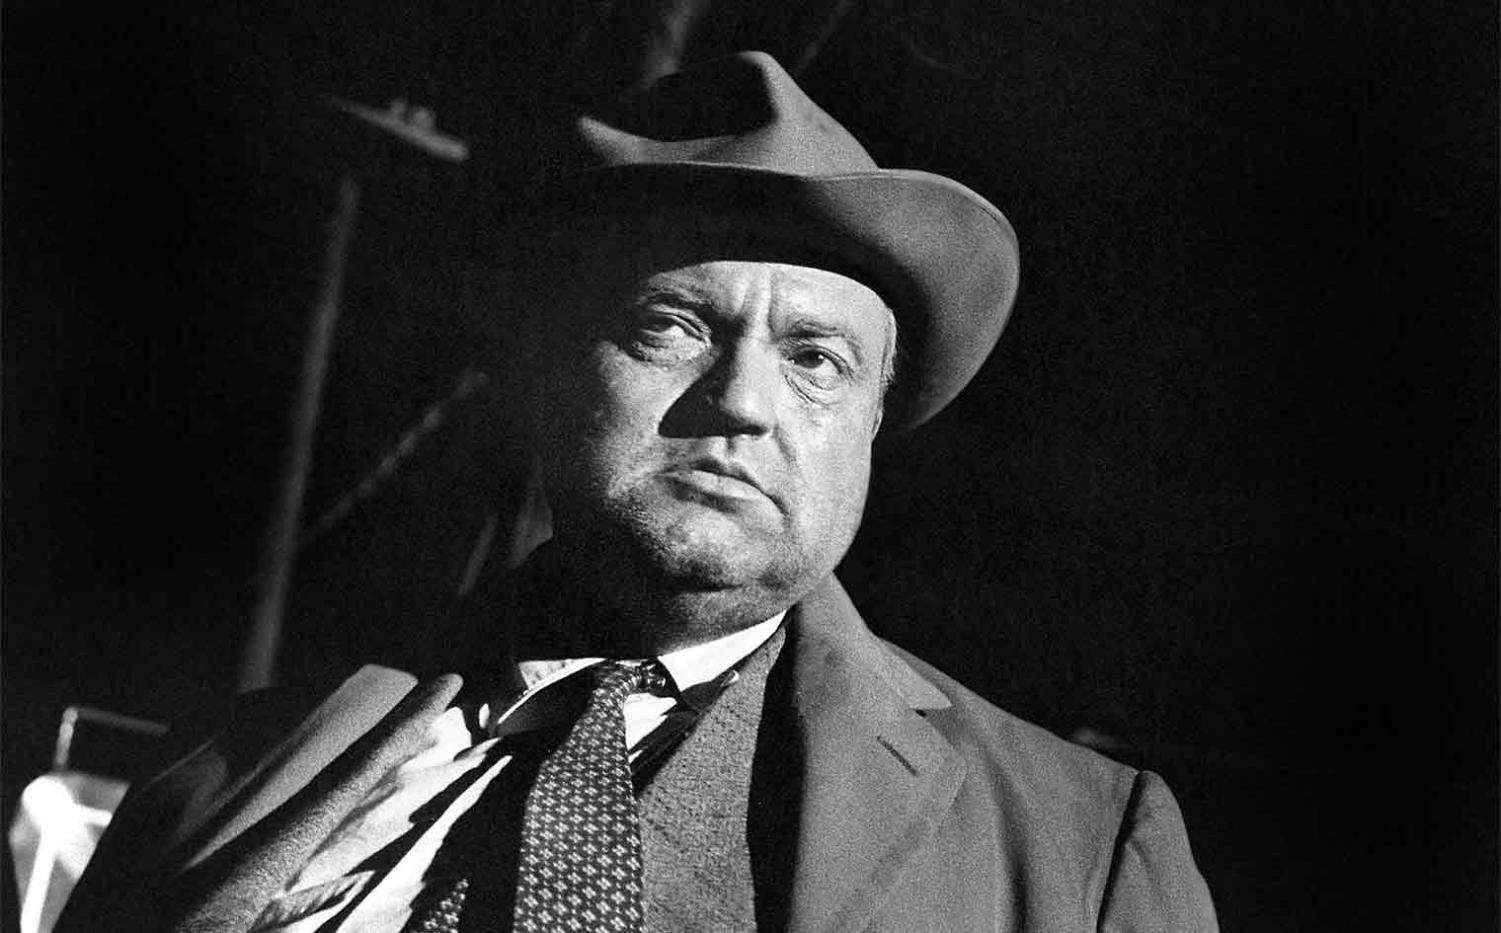 Still of Orson Welles from his film